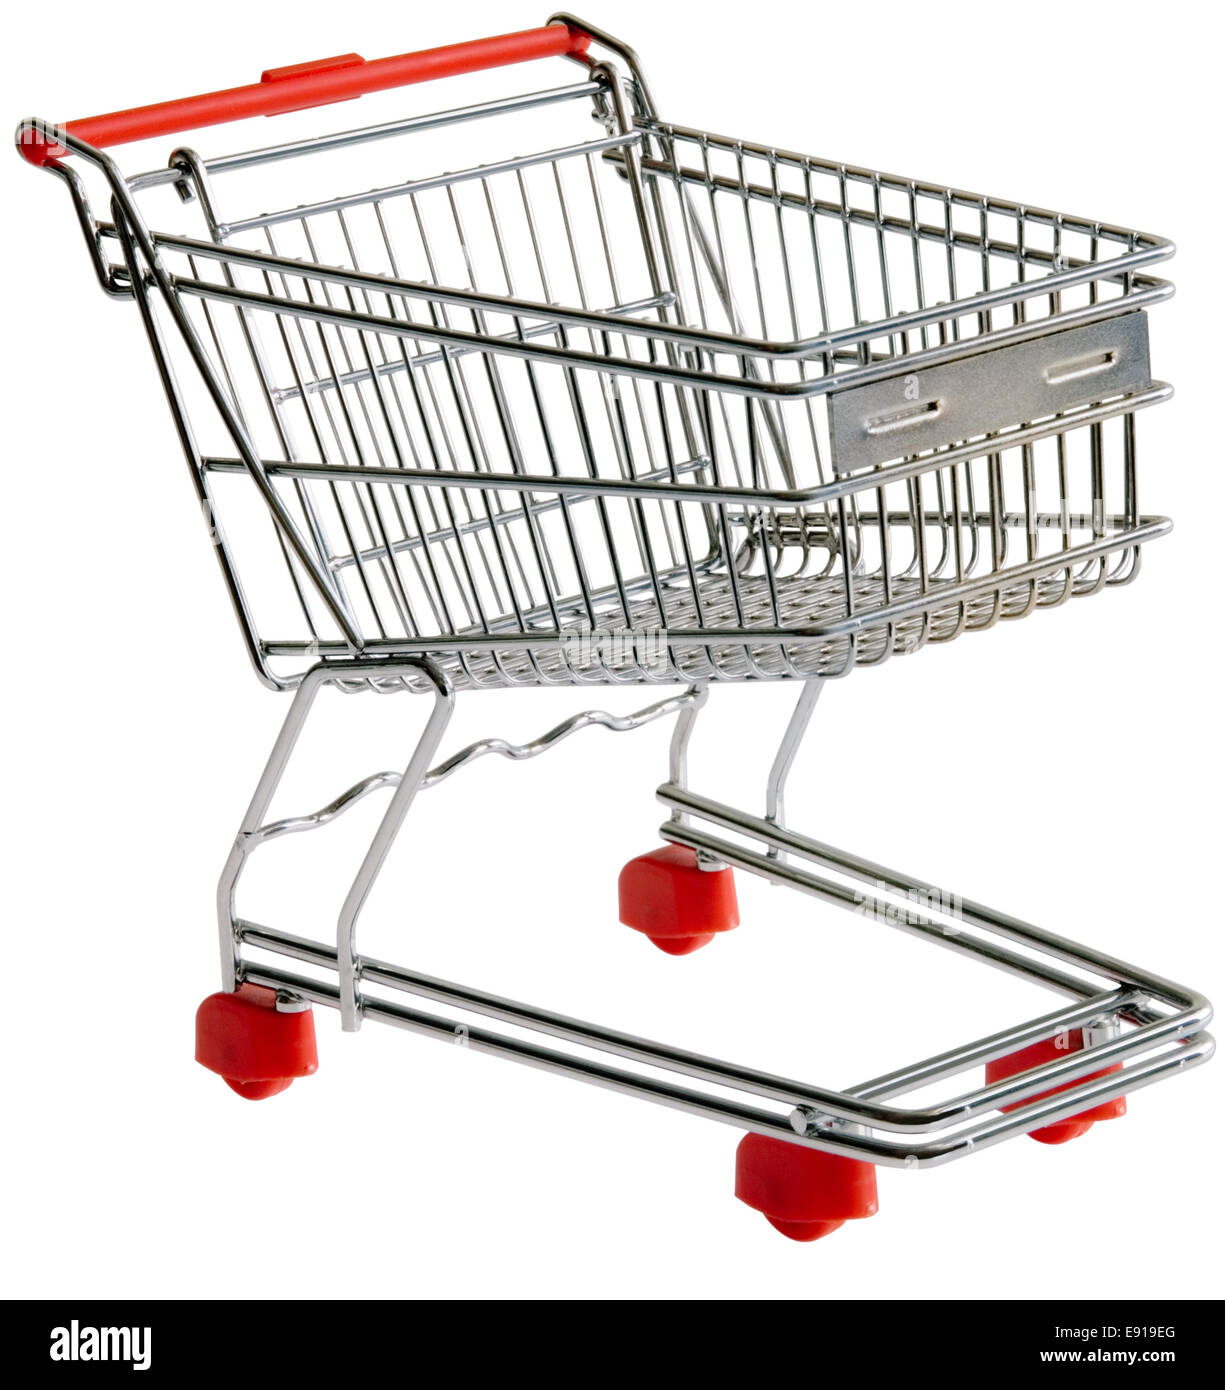 Shopping trolley cutout - Stock Image